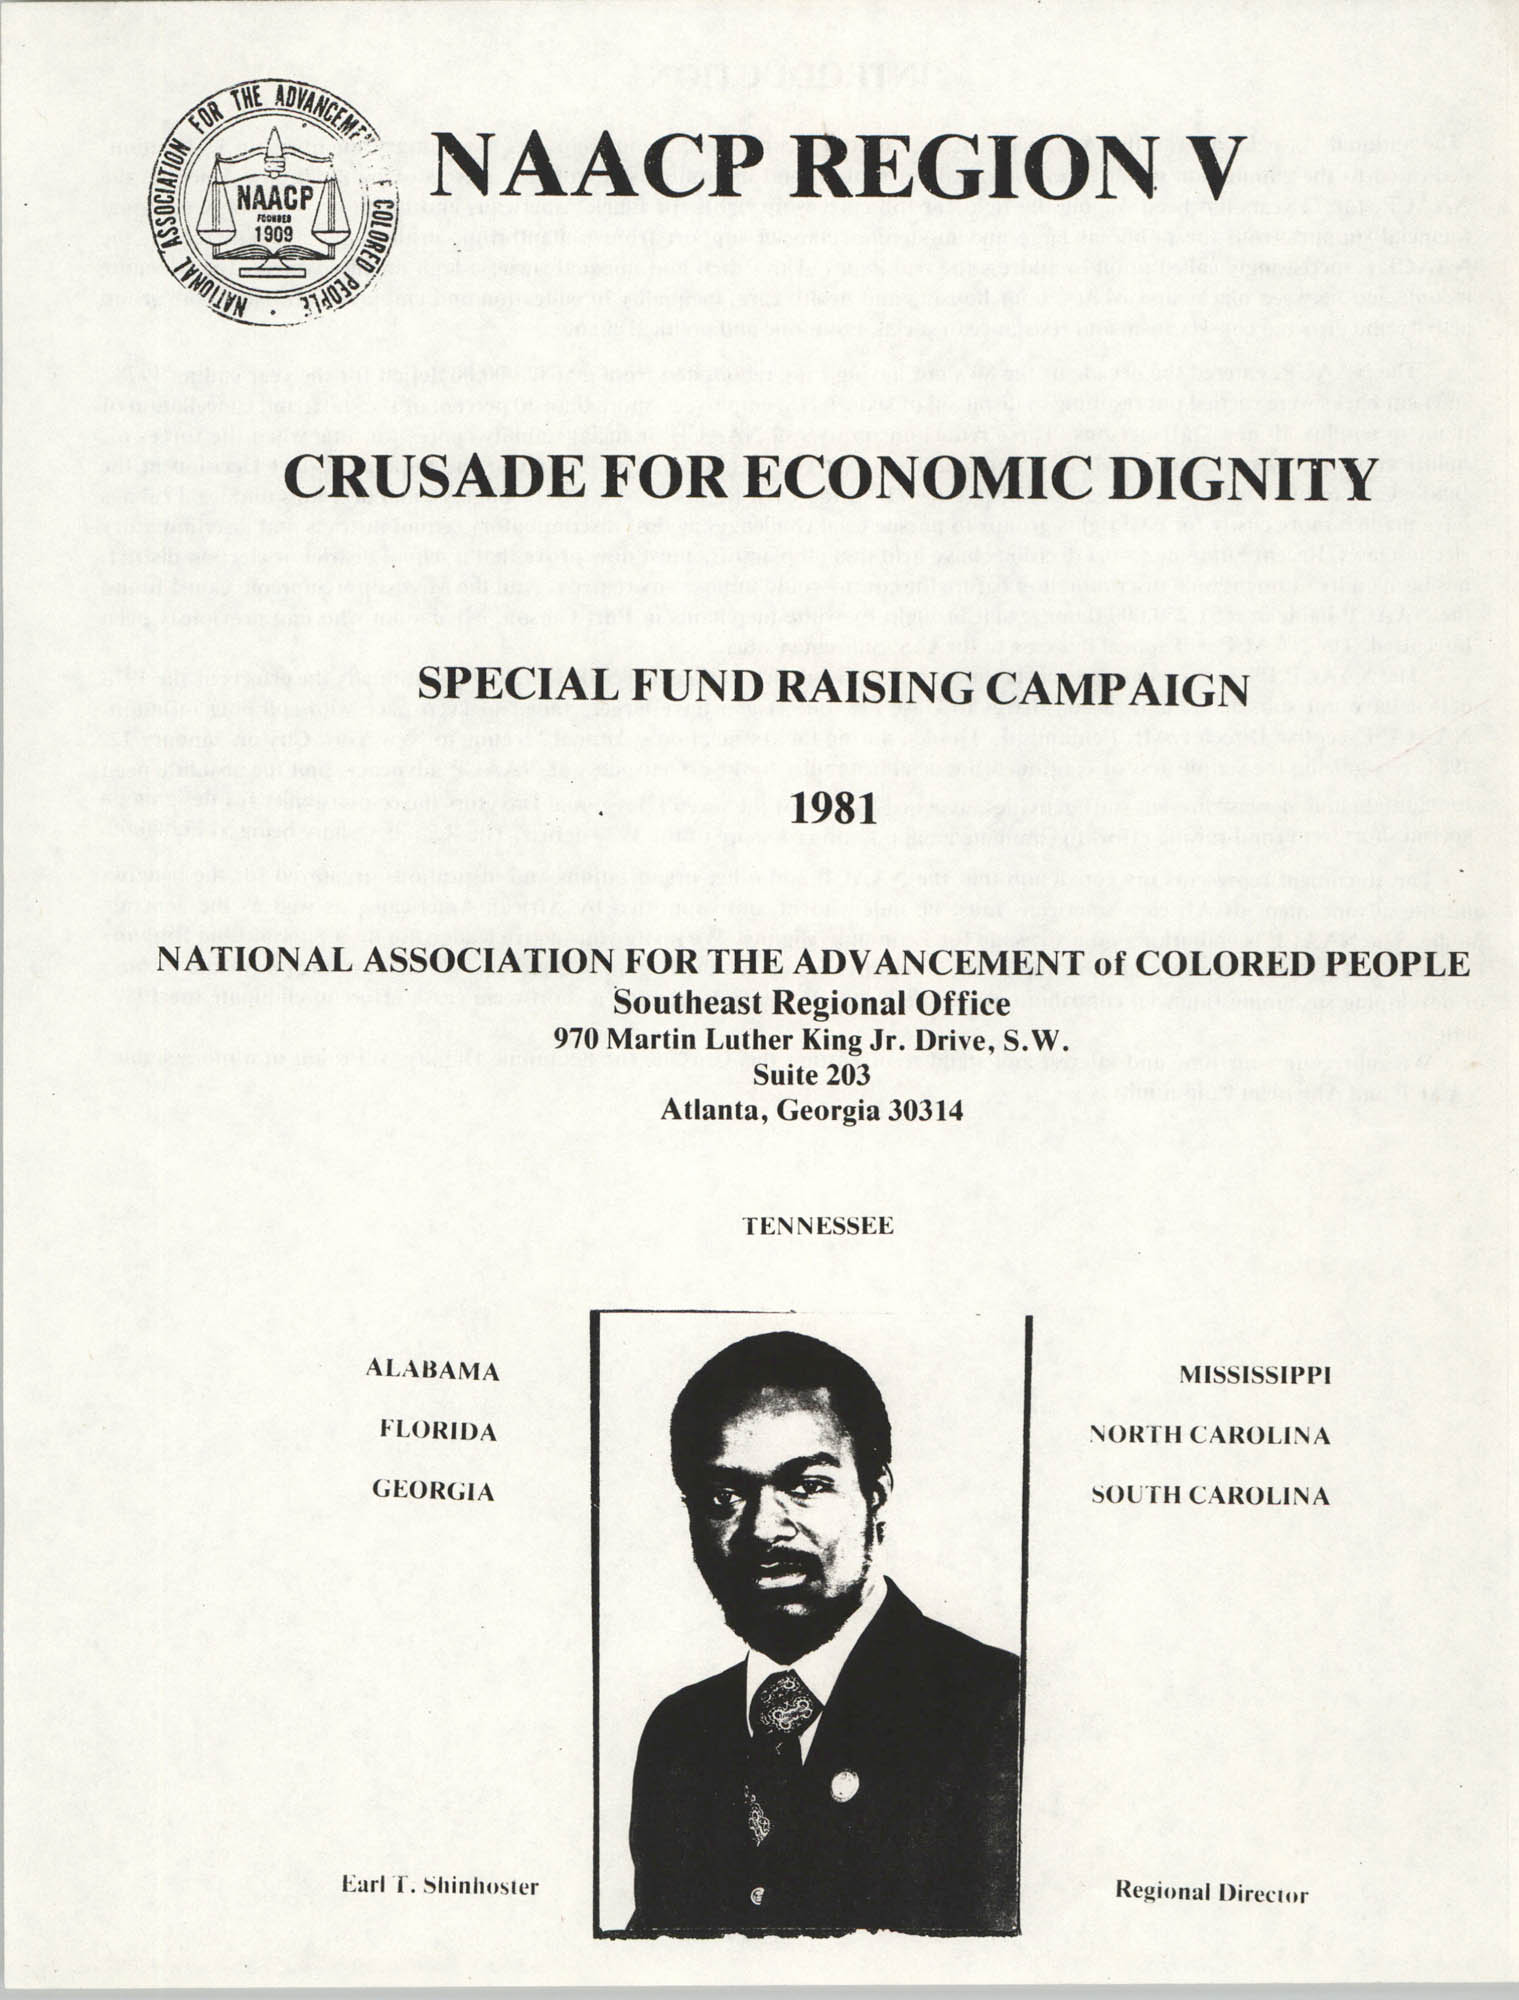 NAACP Region V, Crusade for Economic Dignity, Special Fund Raising Campaign, 1981